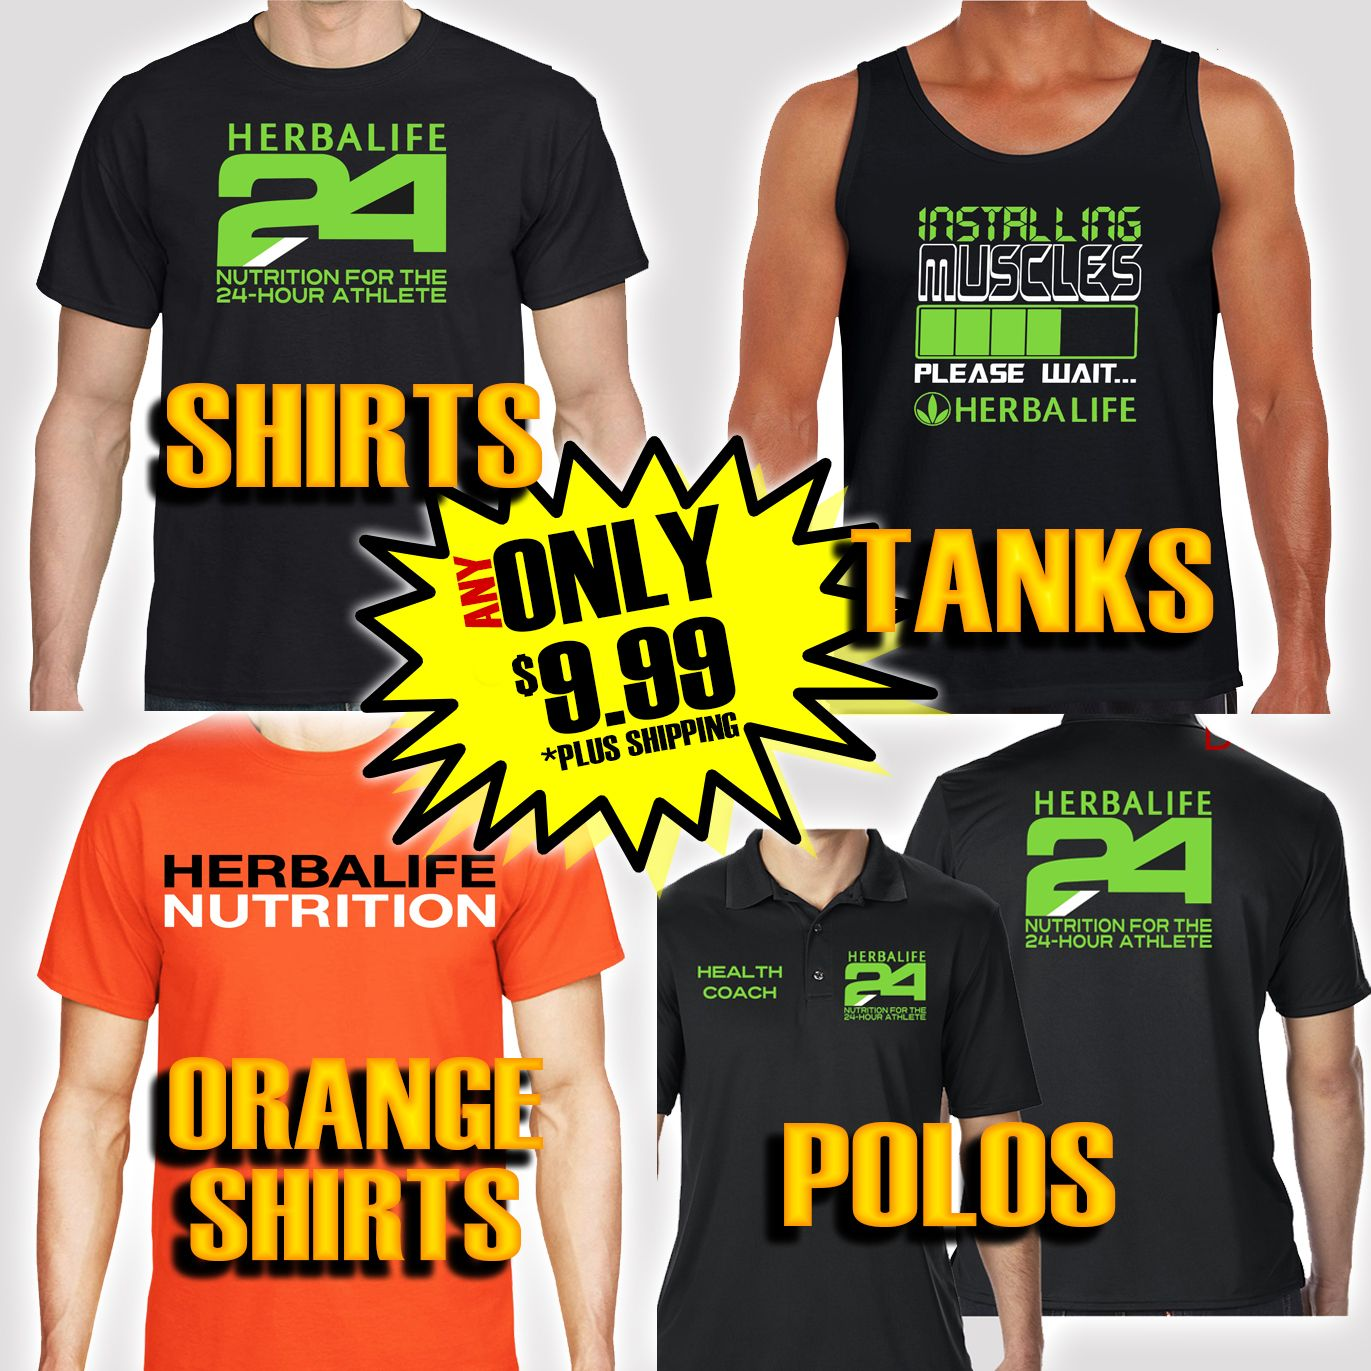 Tanks Polos And Shirts On Sale For Only 999 Herbalife Apparel